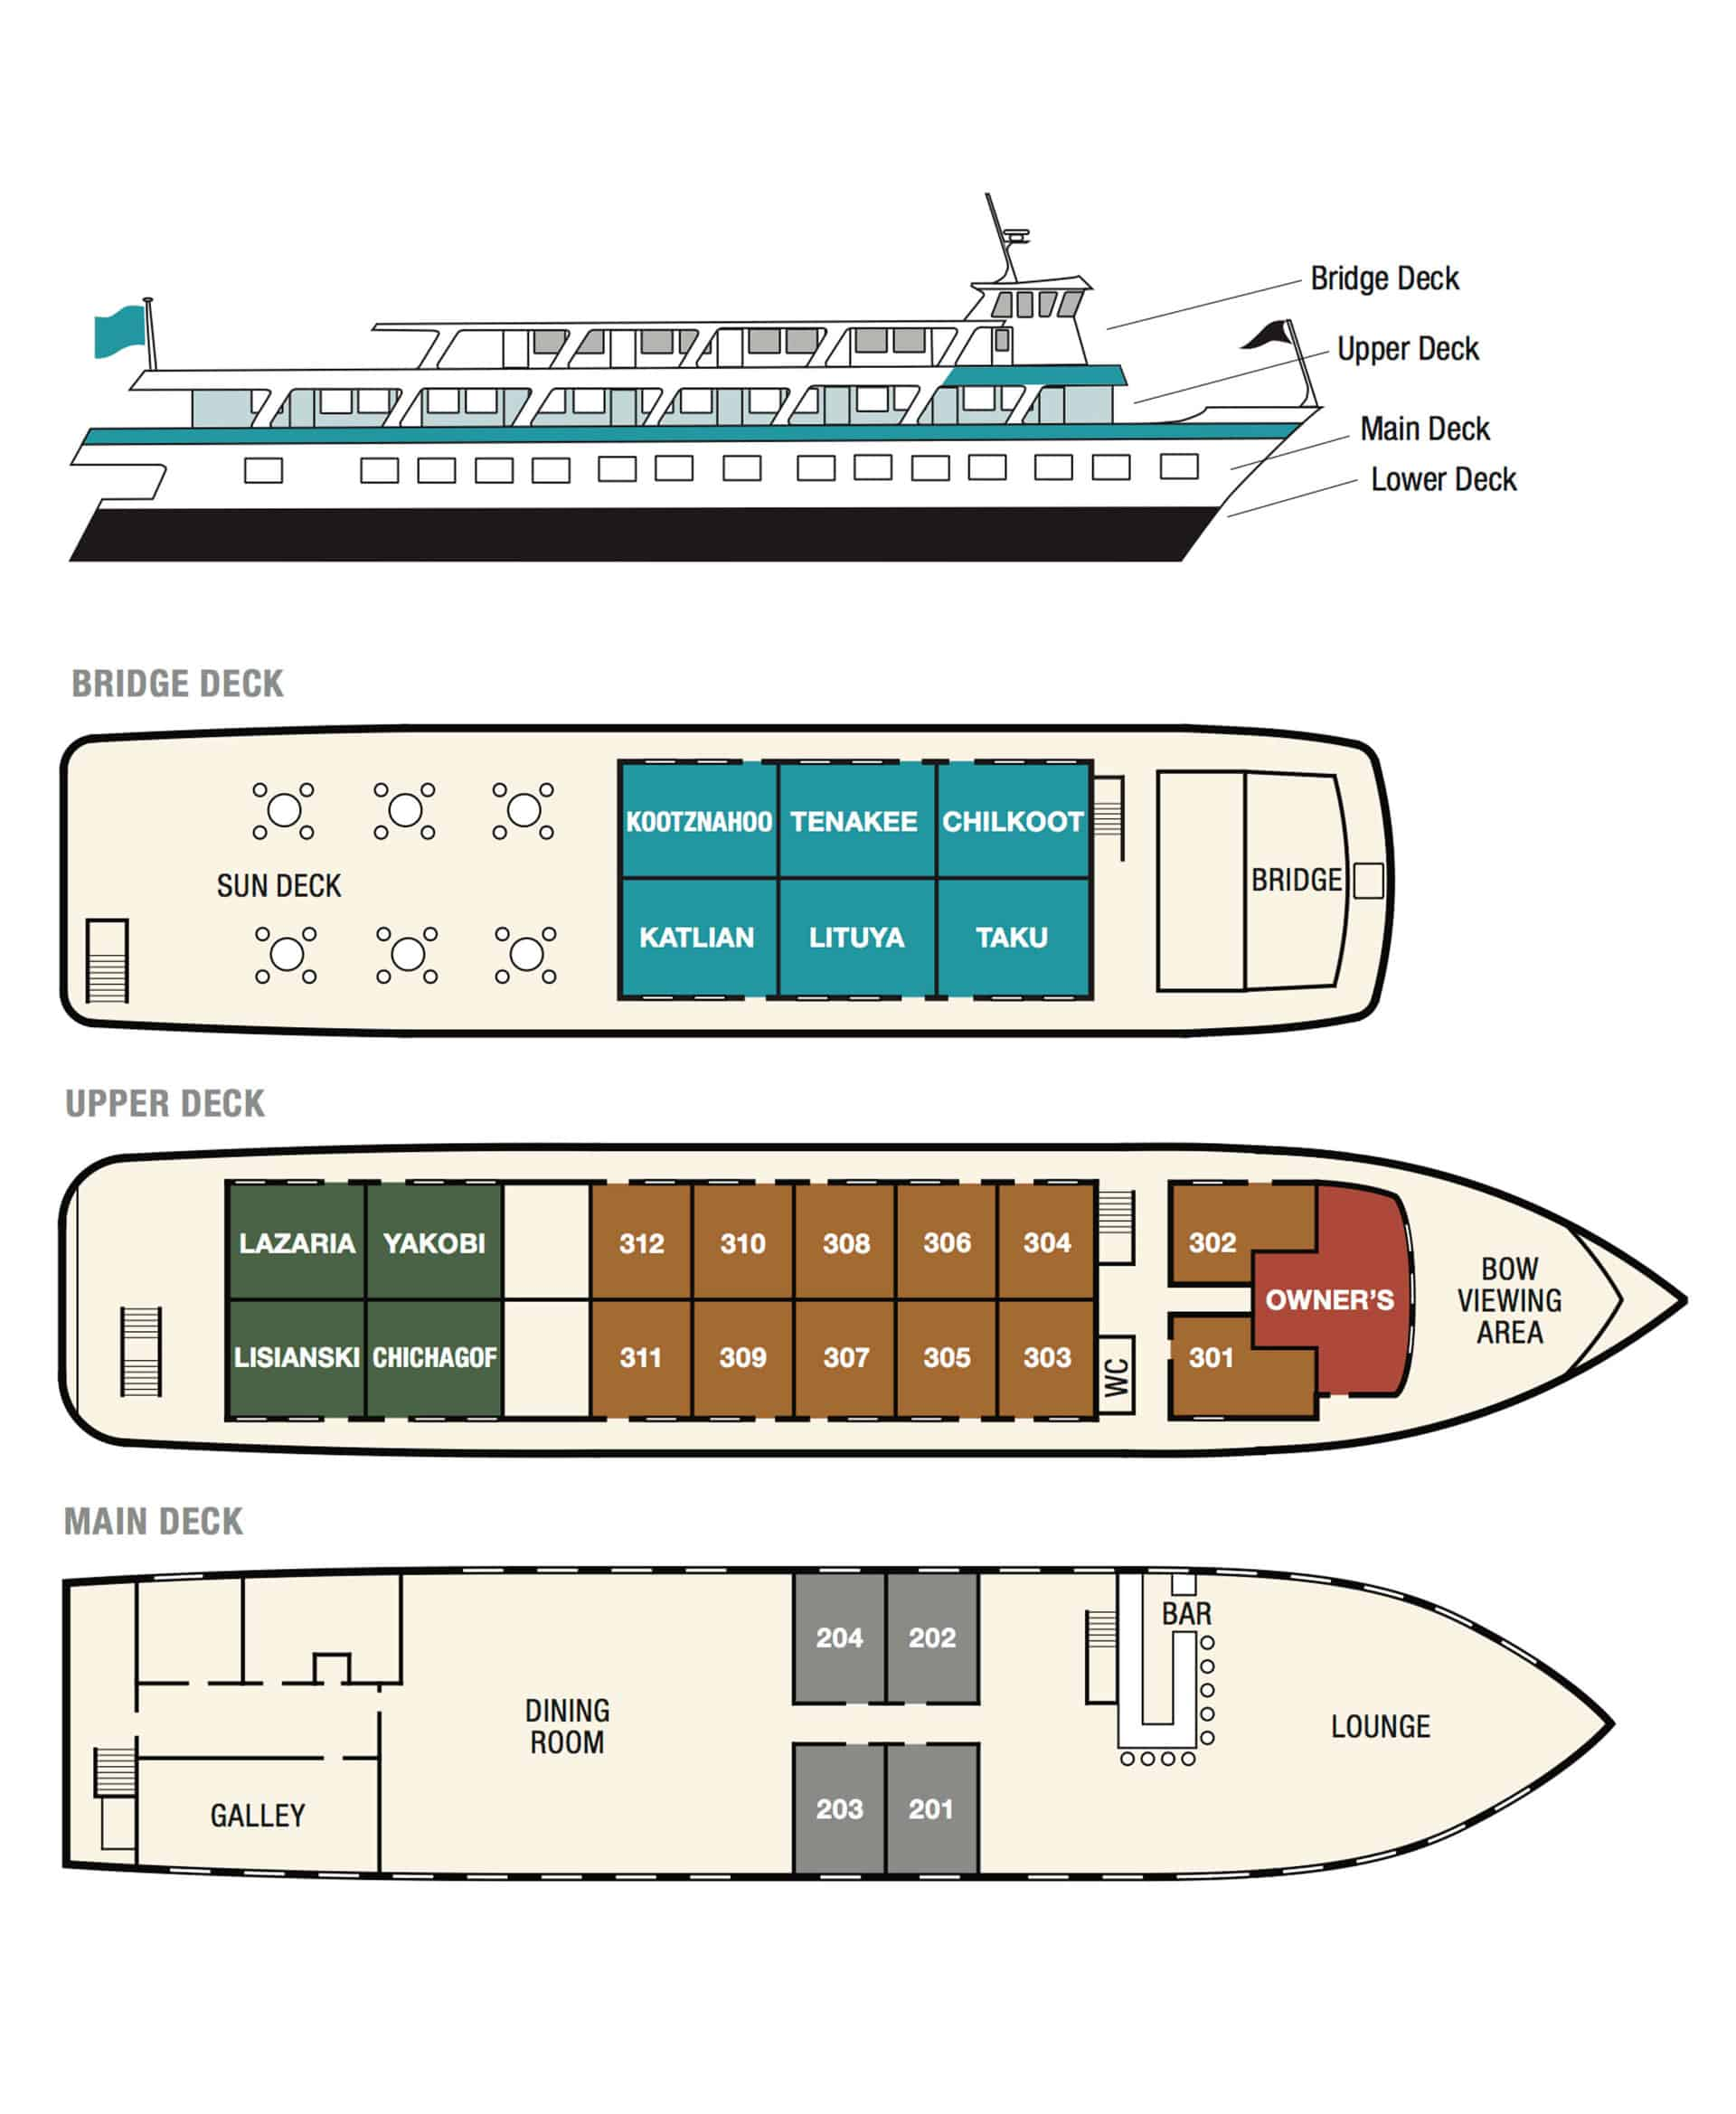 Deck plan of the Admiralty Dream showing the Bridge Deck, Upper Deck, and Main deck with cabin categories color coded.